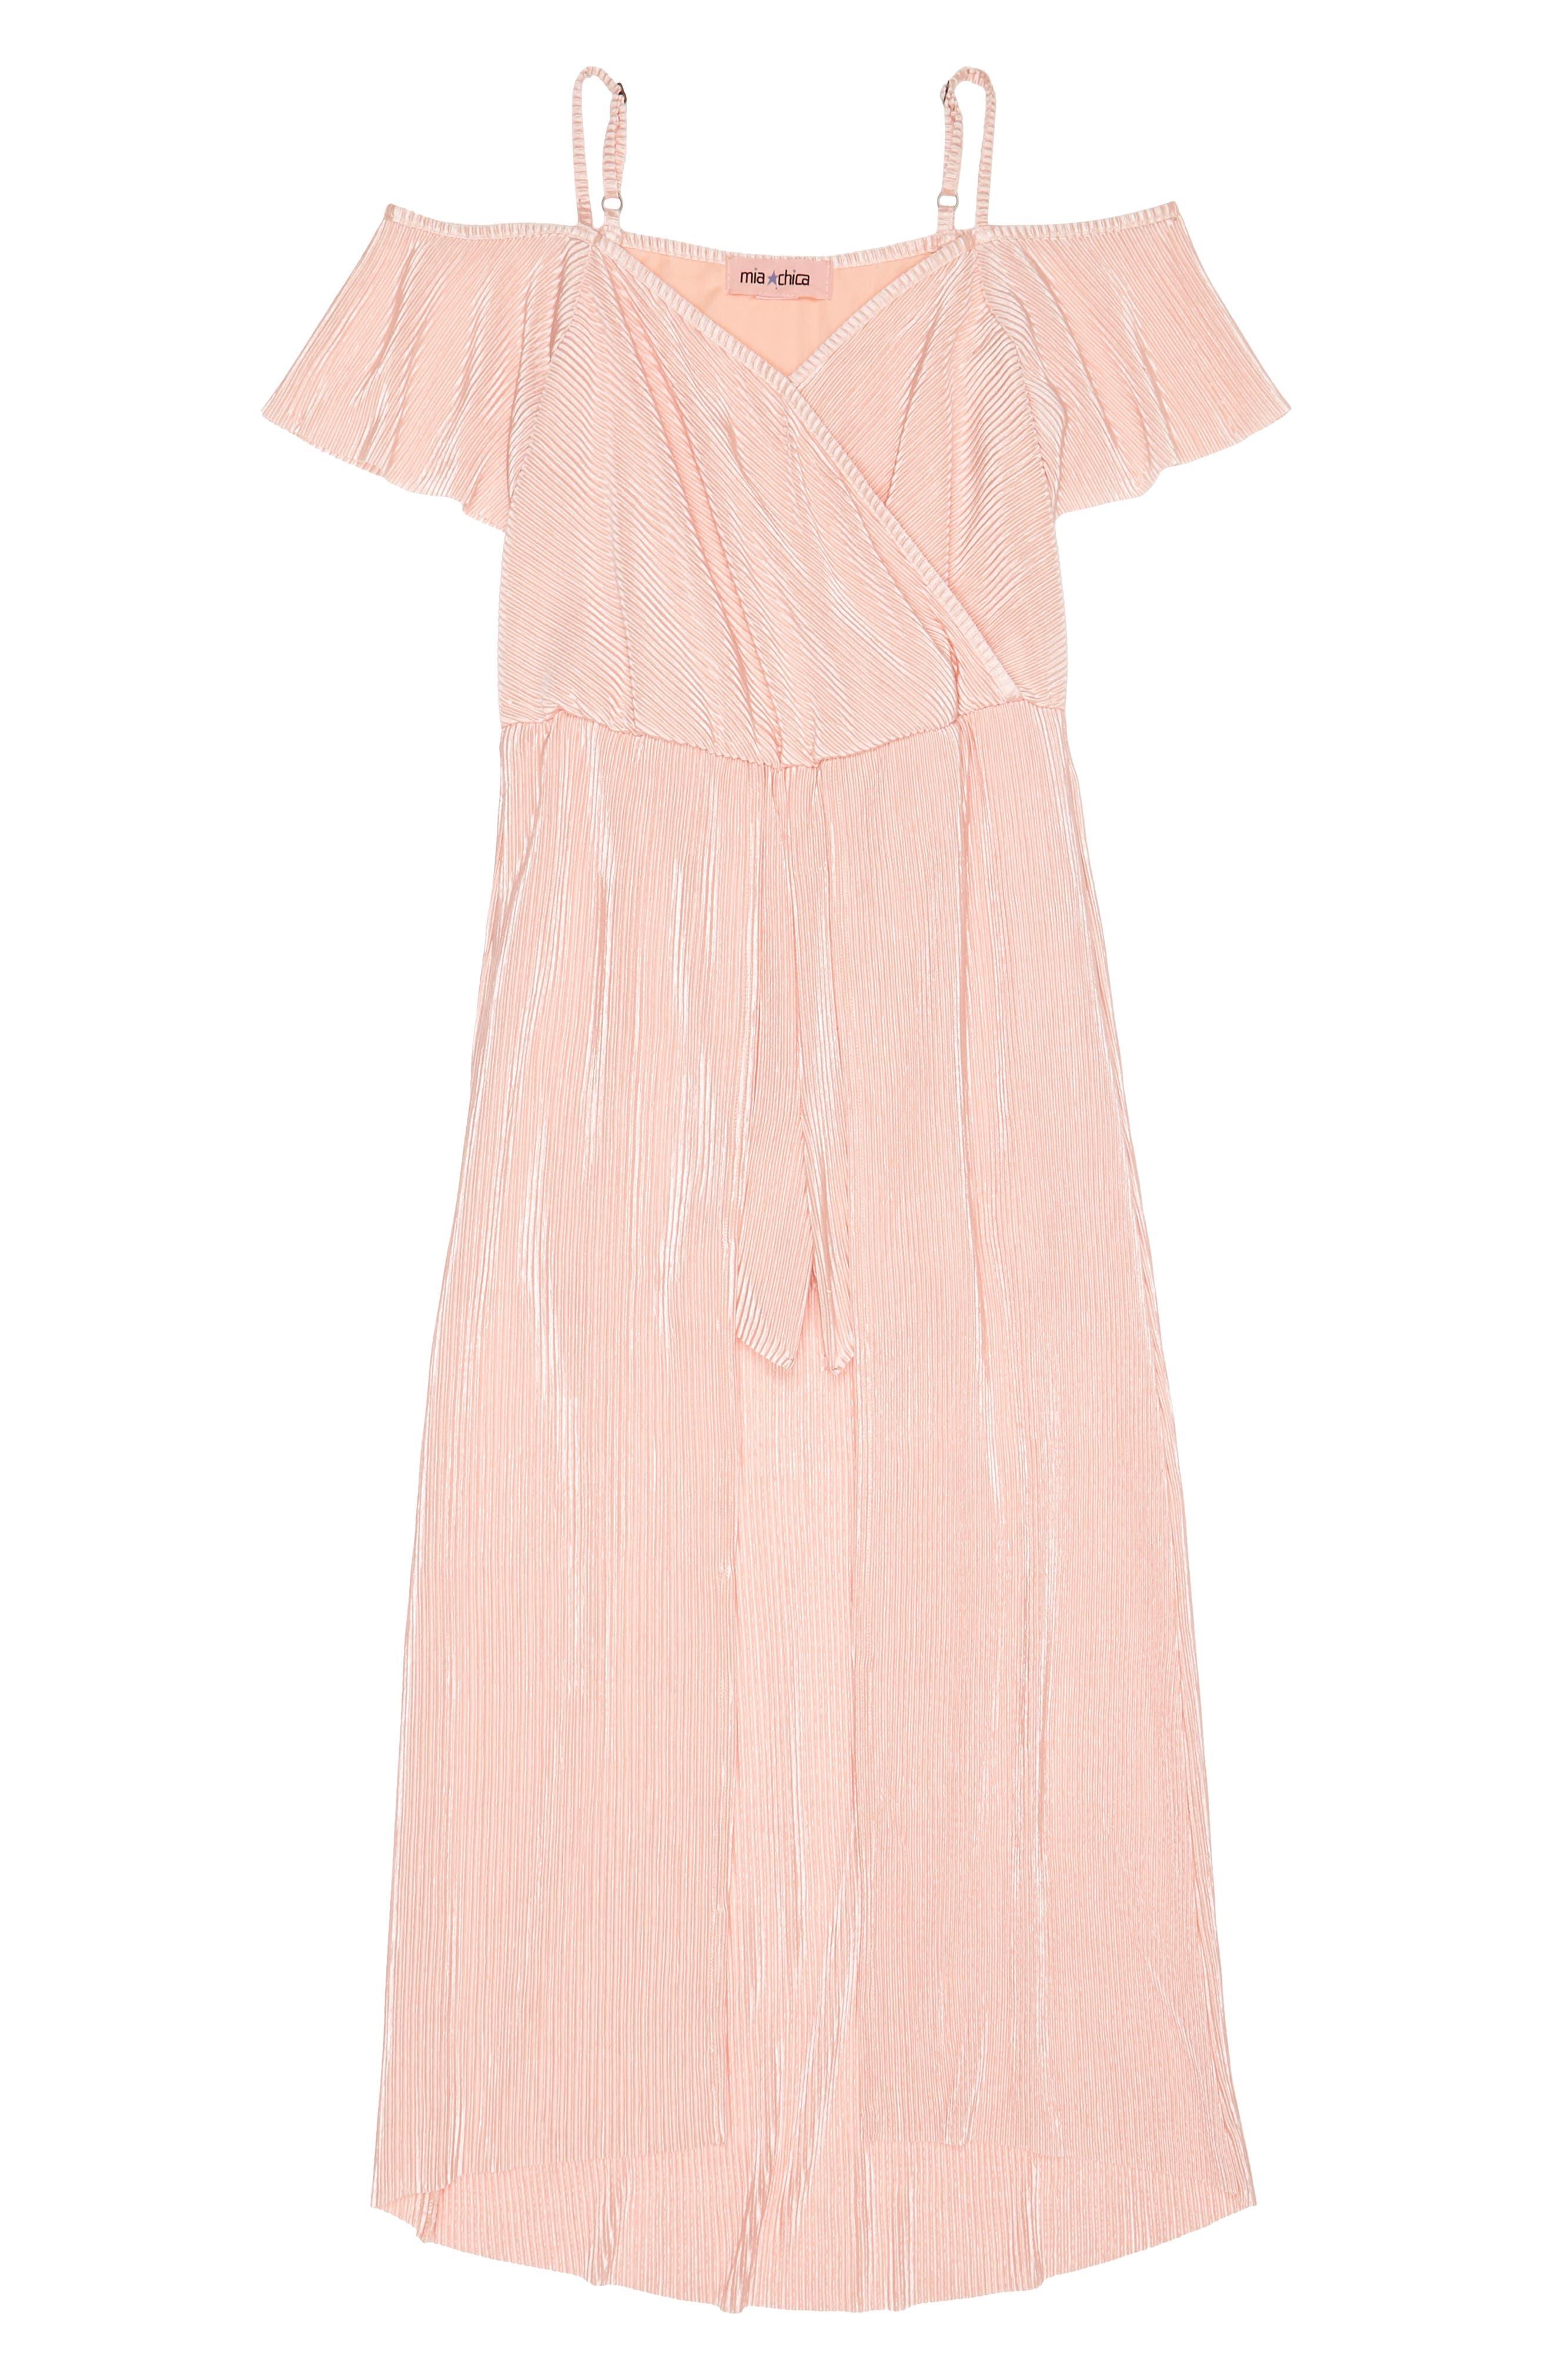 Alternate Image 1 Selected - Mia Chica Plissé Maxi Romper (Big Girls)